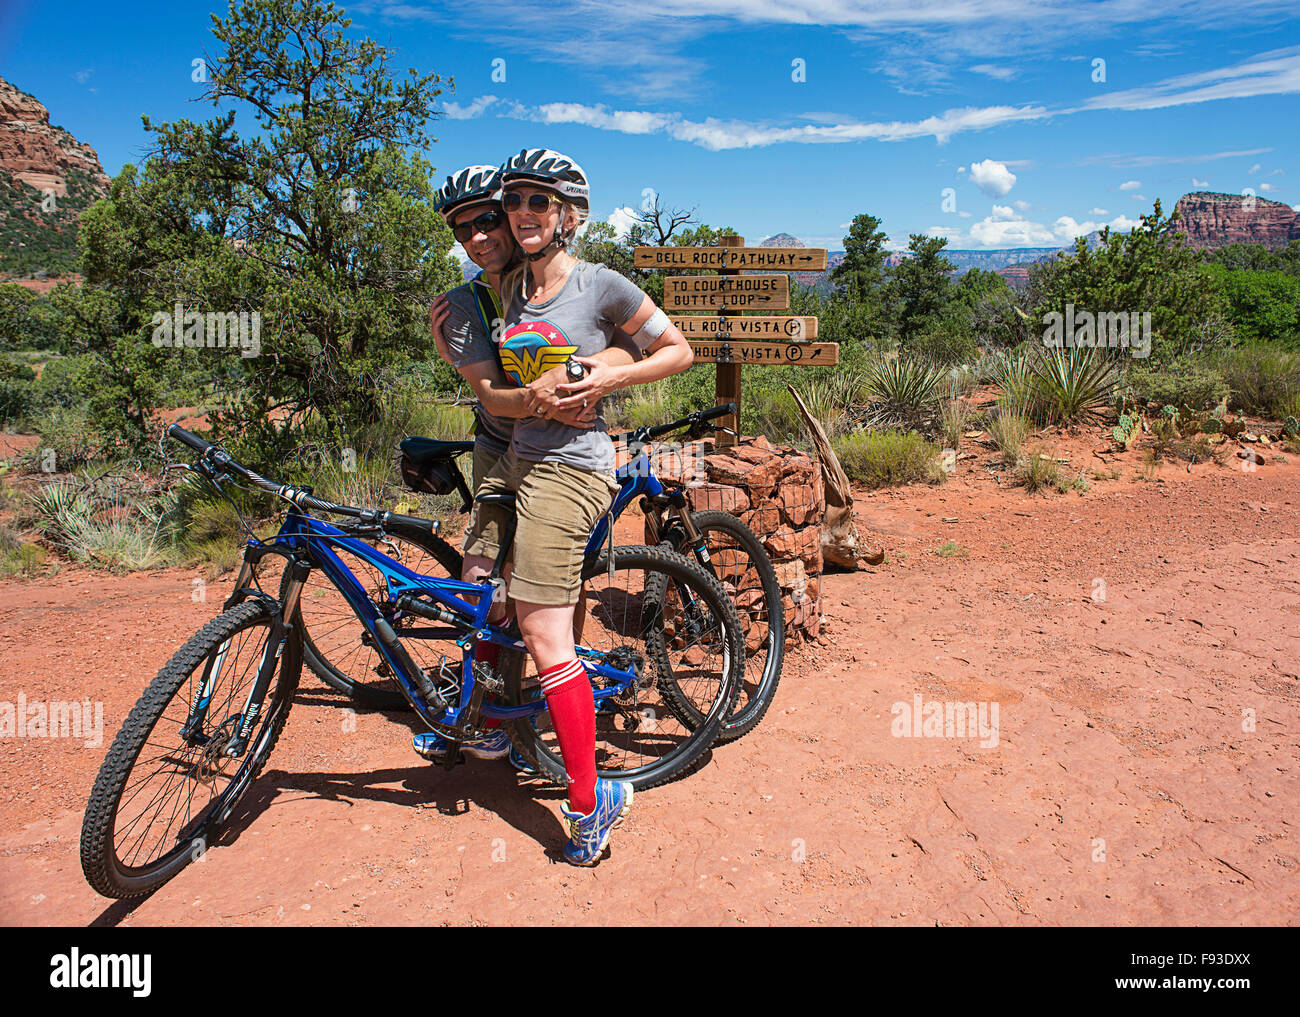 A couple on mountain bikes near Sedona Arizona. - Stock Image